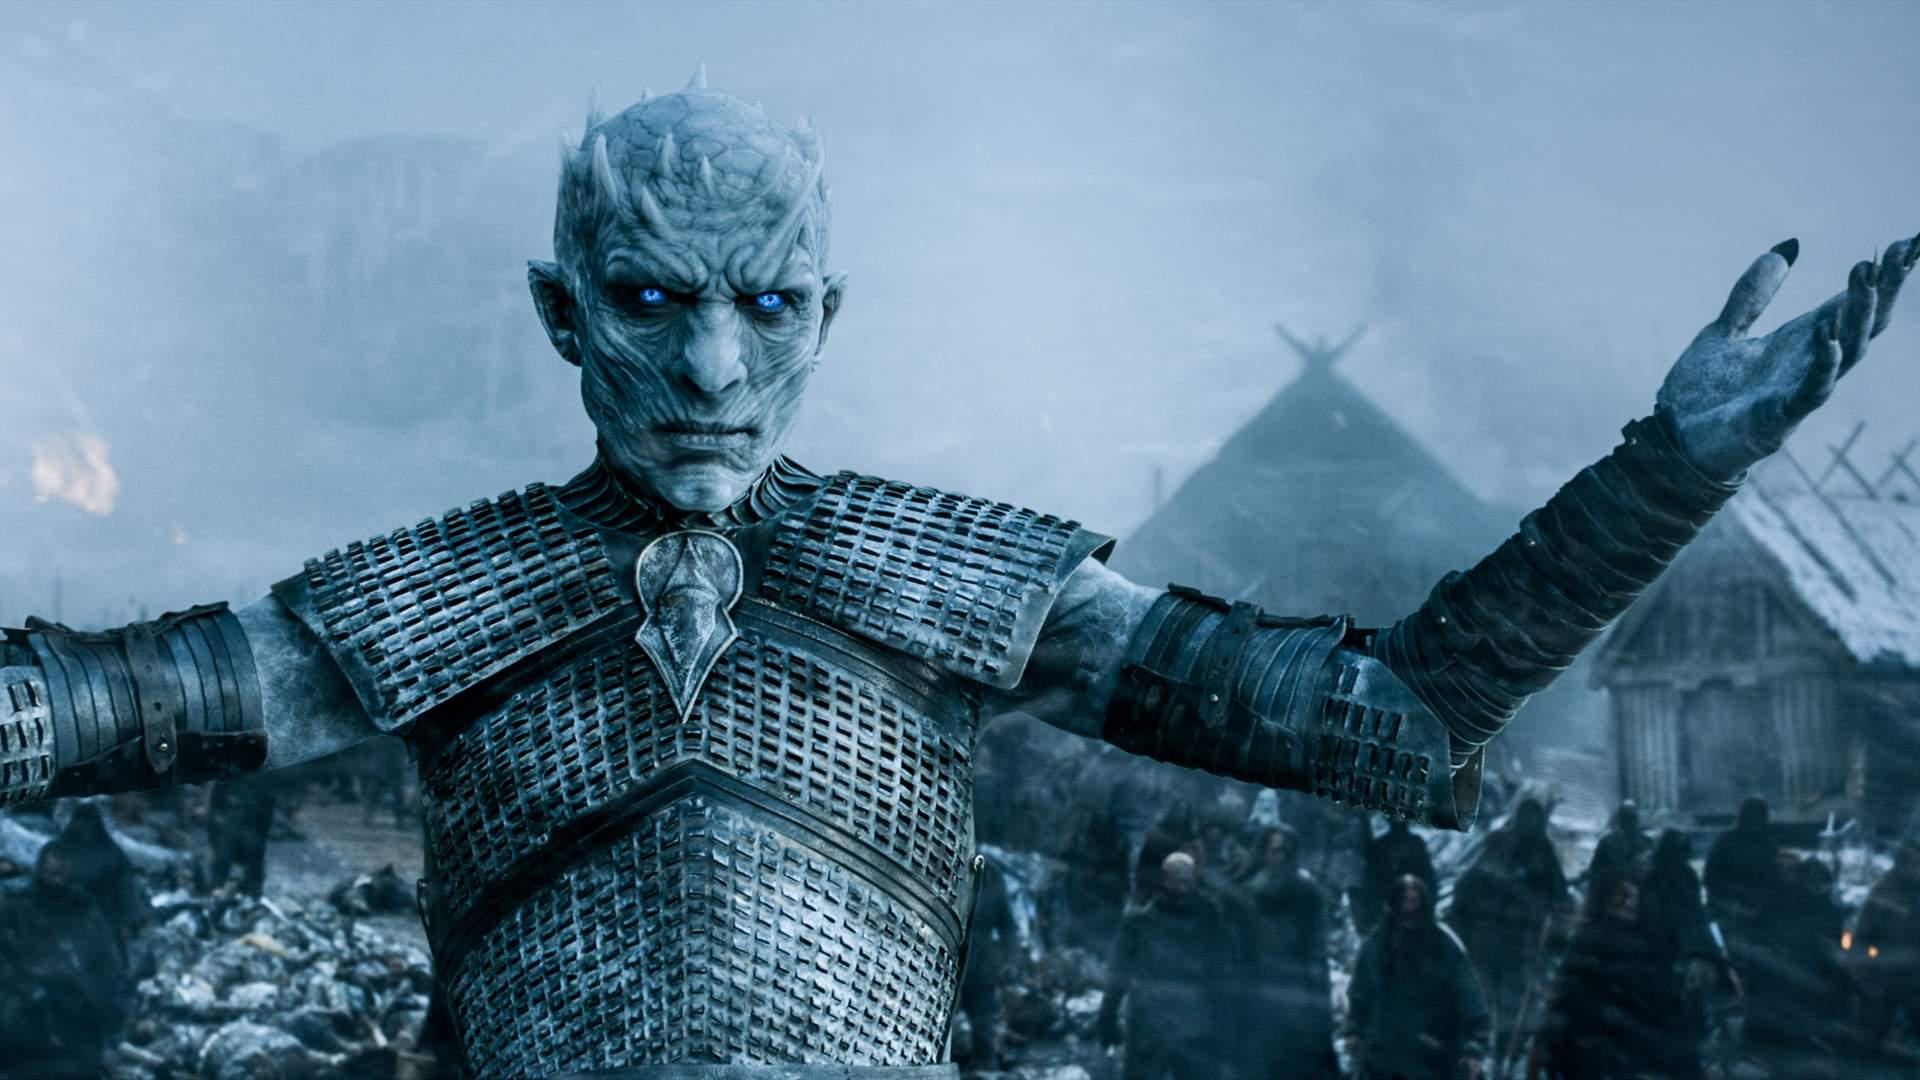 Read The Night King From Game Of Thrones Says He Was Thinking About Cake In The Long Night Online